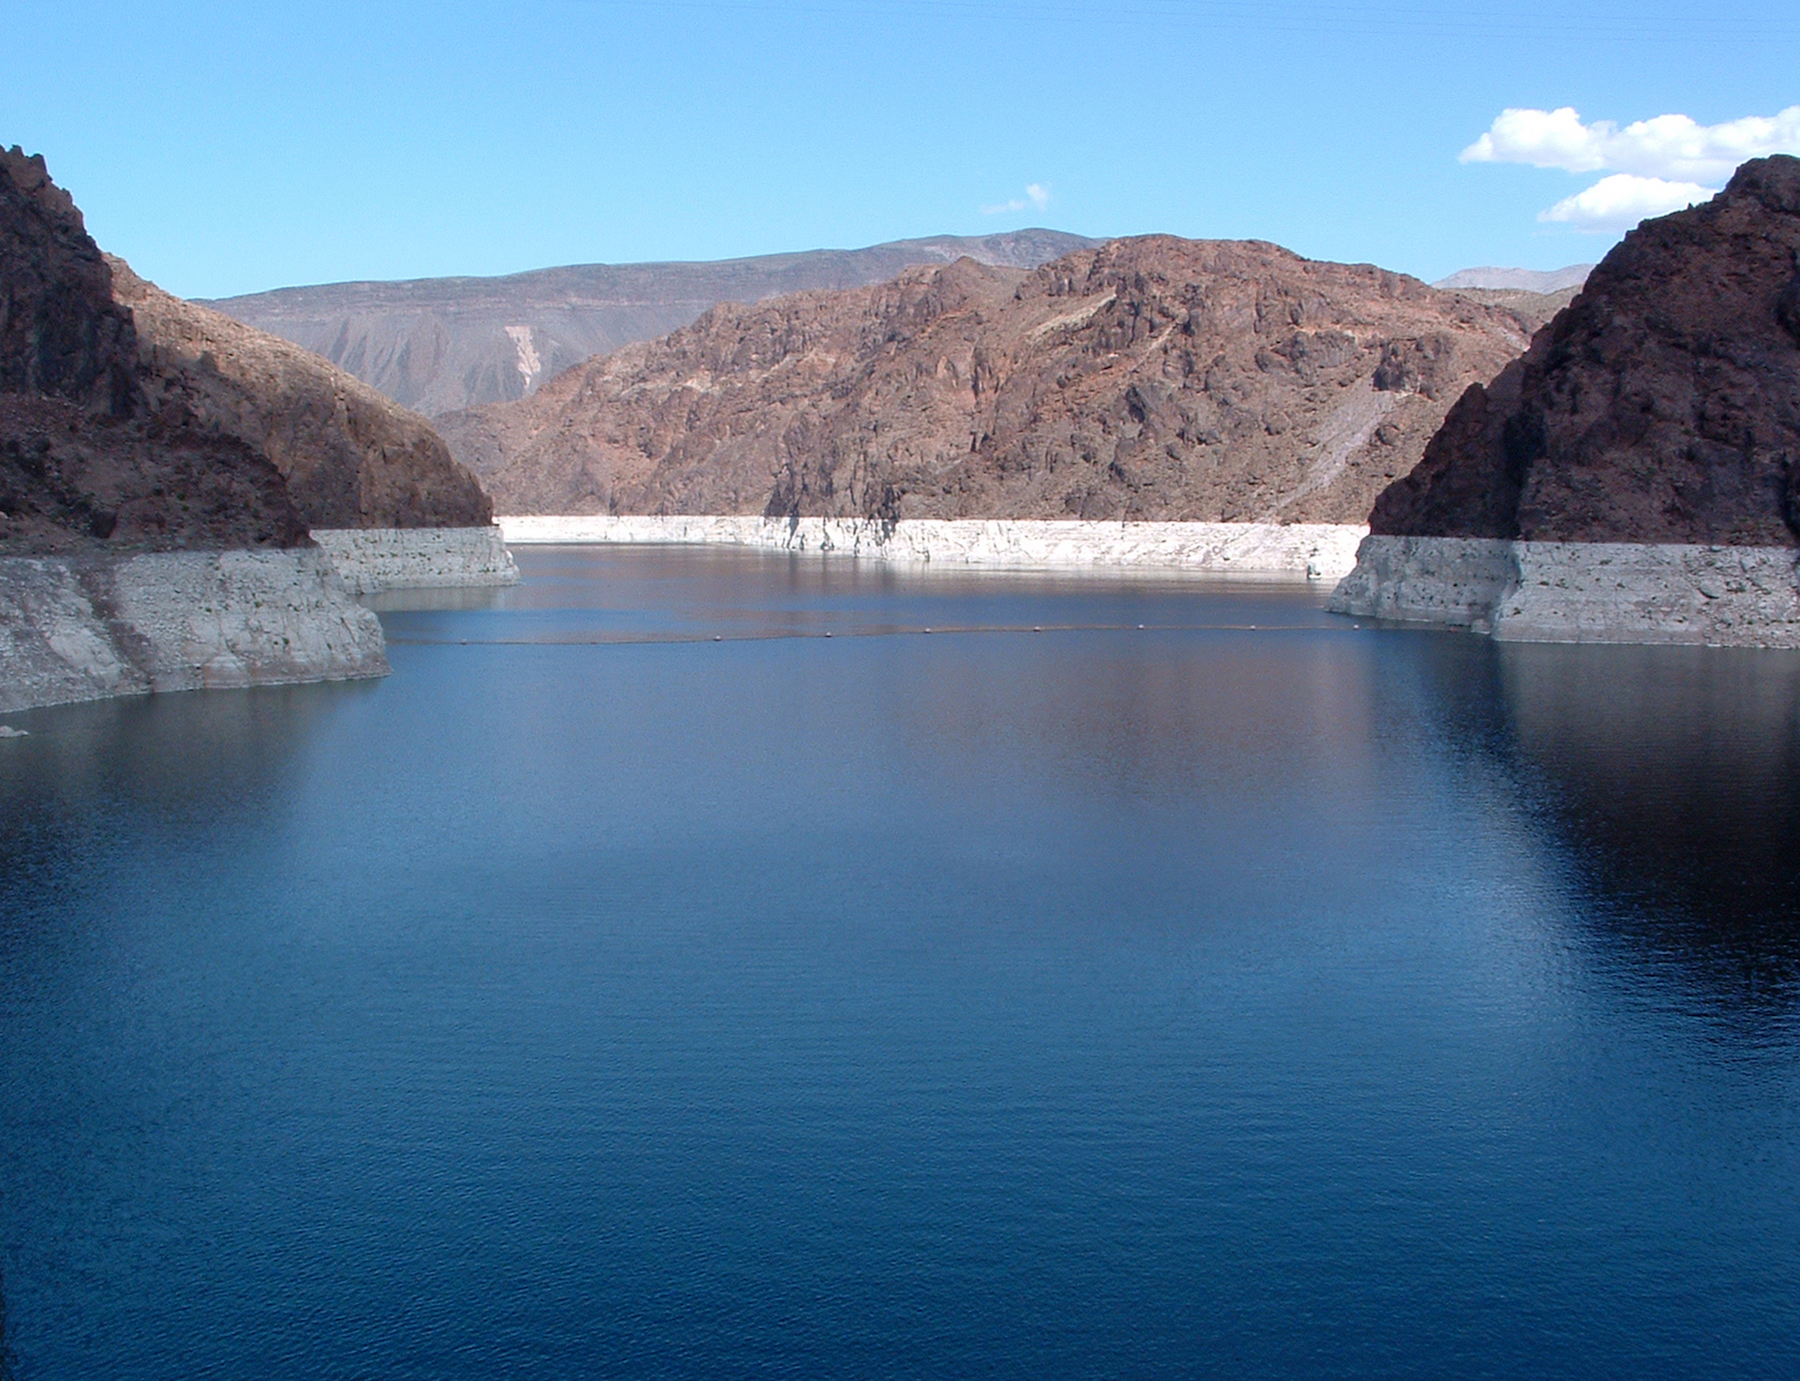 Lake Mead  is the largest reservoir in the United States, measured by water capacity. It is on the Colorado River about 24 mi (39 km) from the Las Vegas Strip.